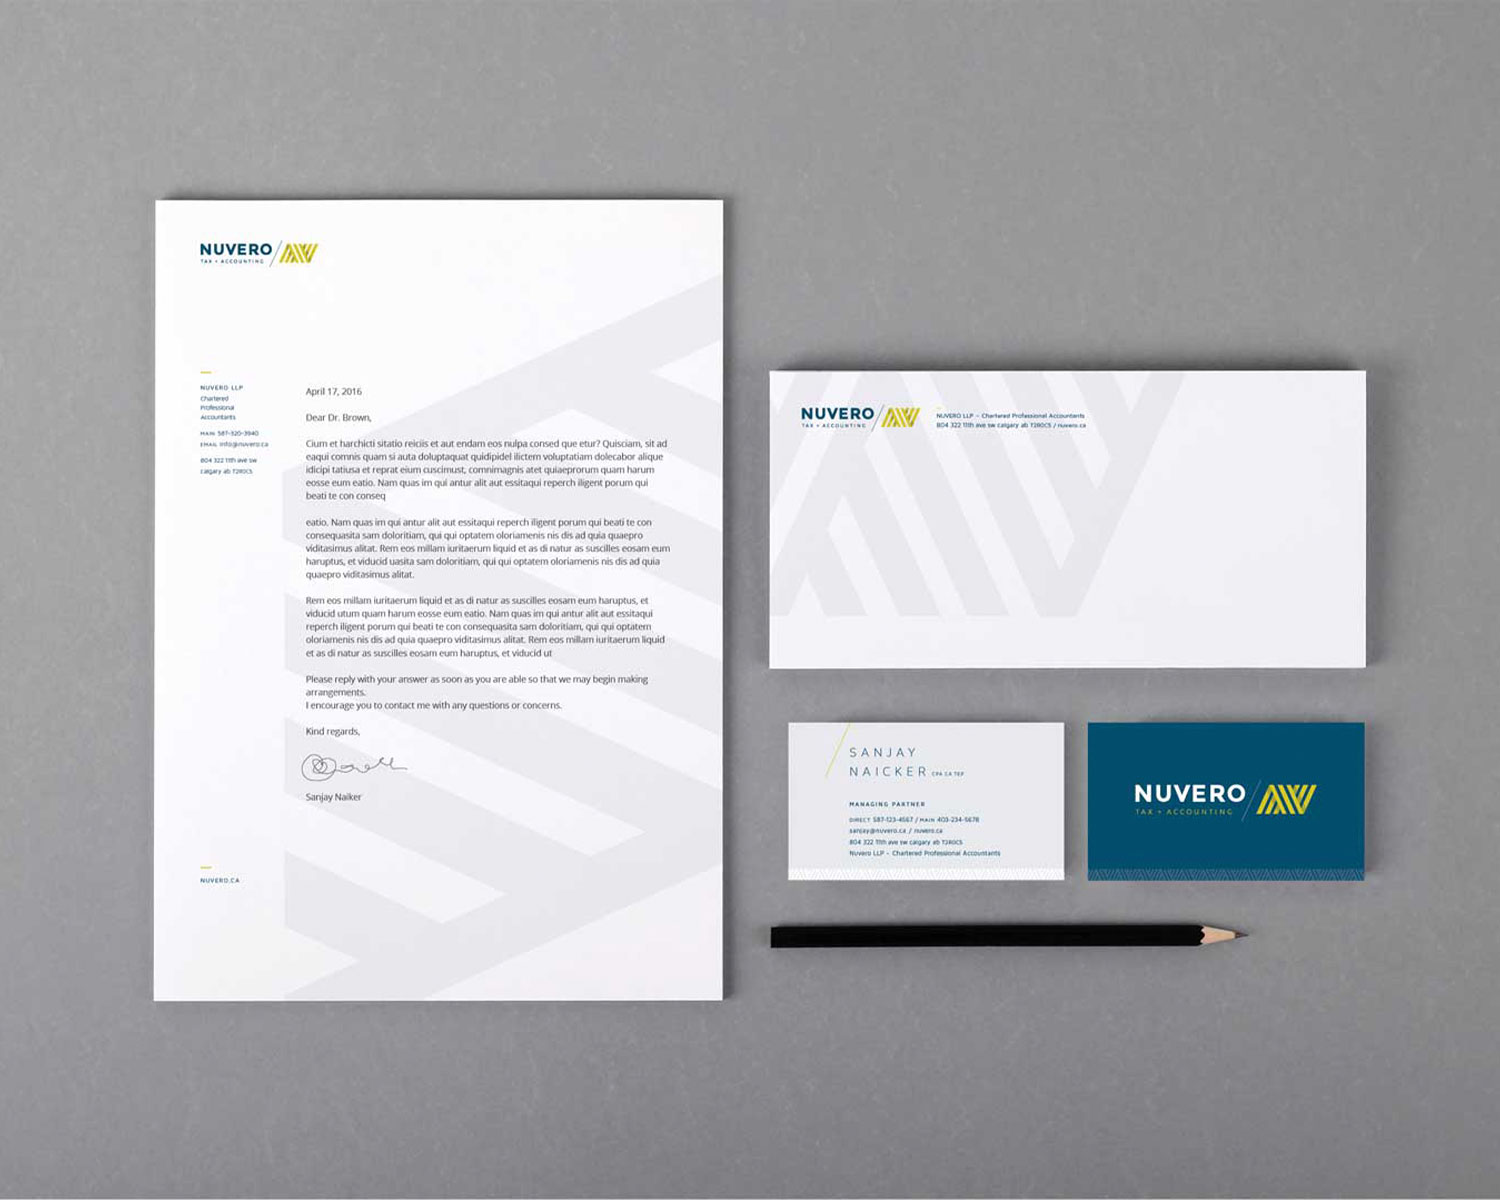 stationary design for nuvero tax and accounting in calgary of business cards and letterhead by studio forum